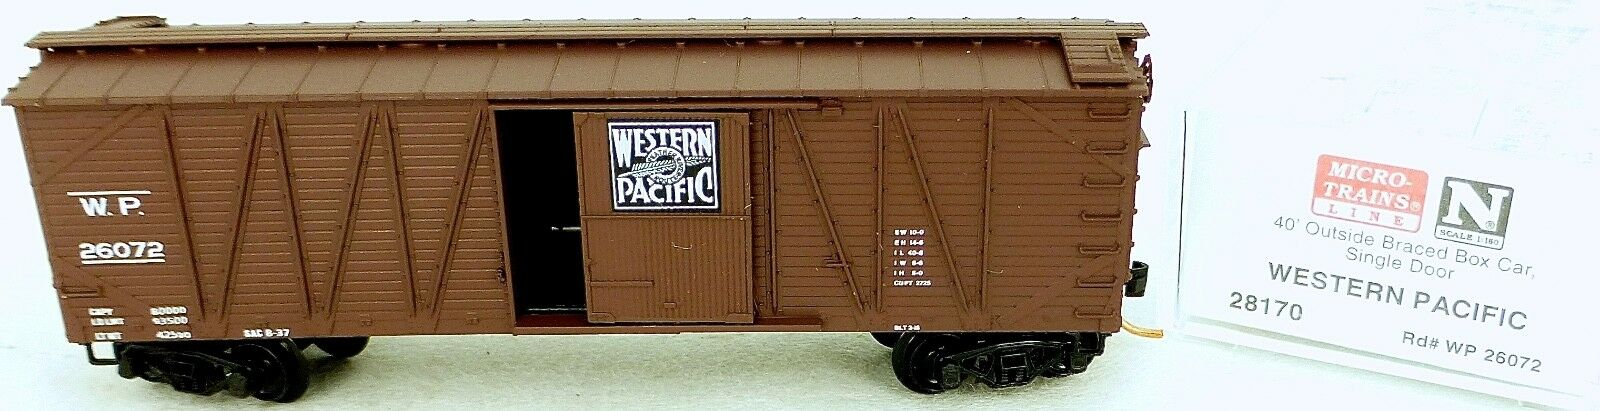 40´ outside Br Boxcar Western Pacific 26072 Micro Trains Line 28170 N 1 160 C Å